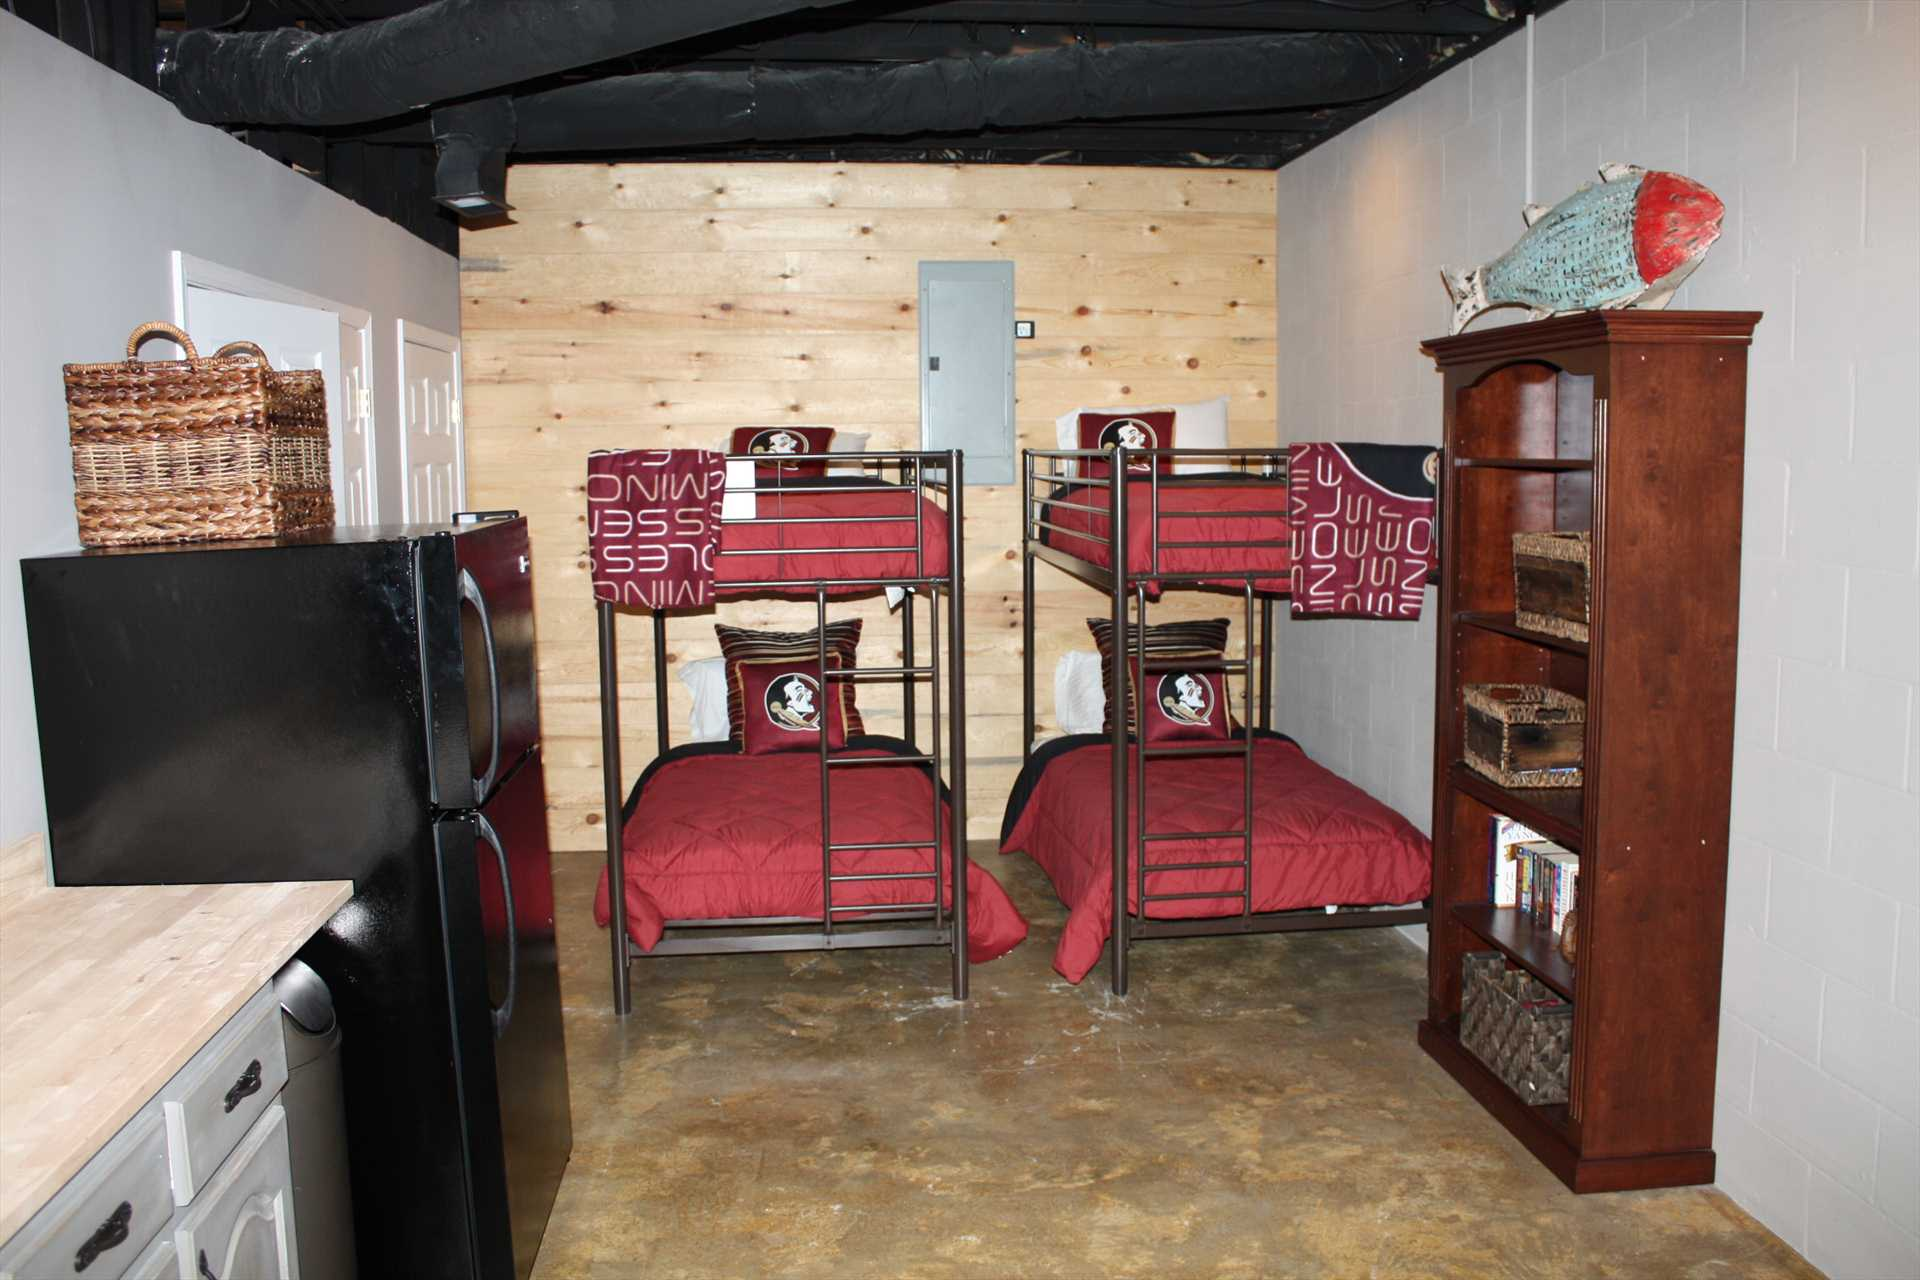 2 sets of bunk beds in Basement